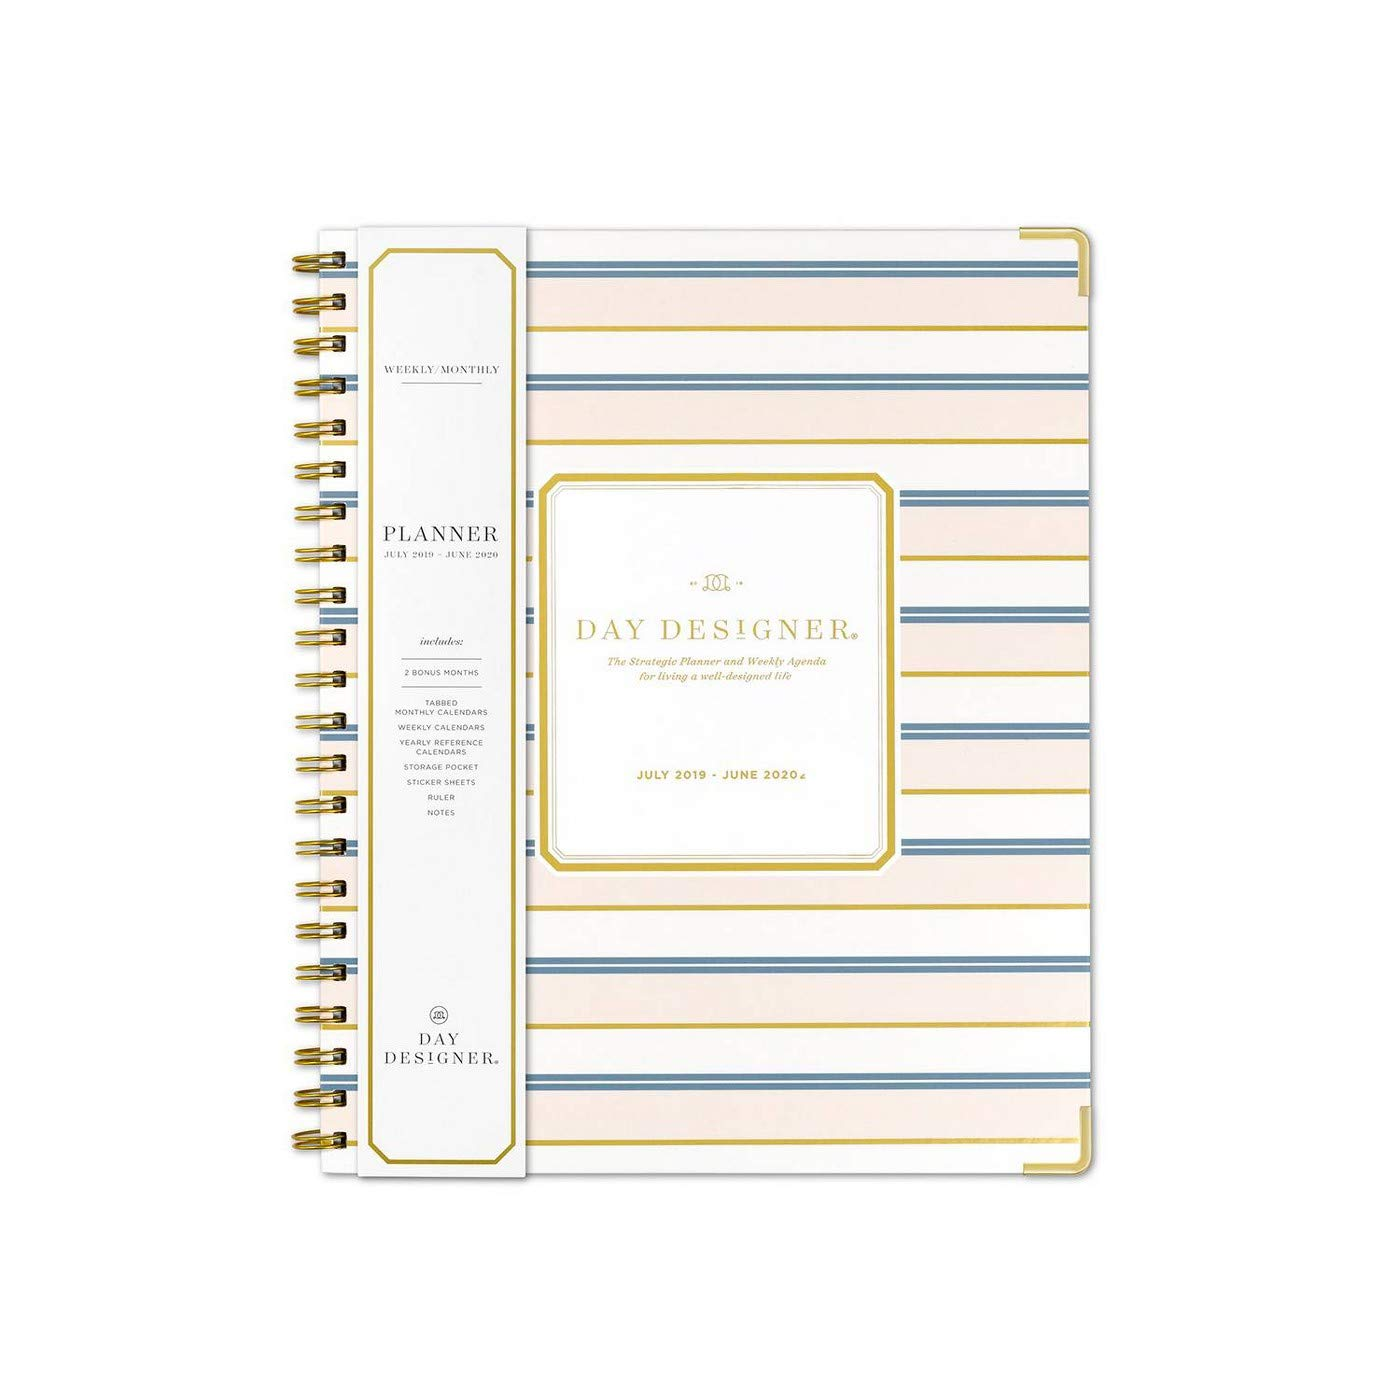 July 2019- June 2020 Vertical Weekly Monthly Planner by Day Designer Large 8 X 11 Hardcover with Gold Corners Stripes and Stylus Pen from ...